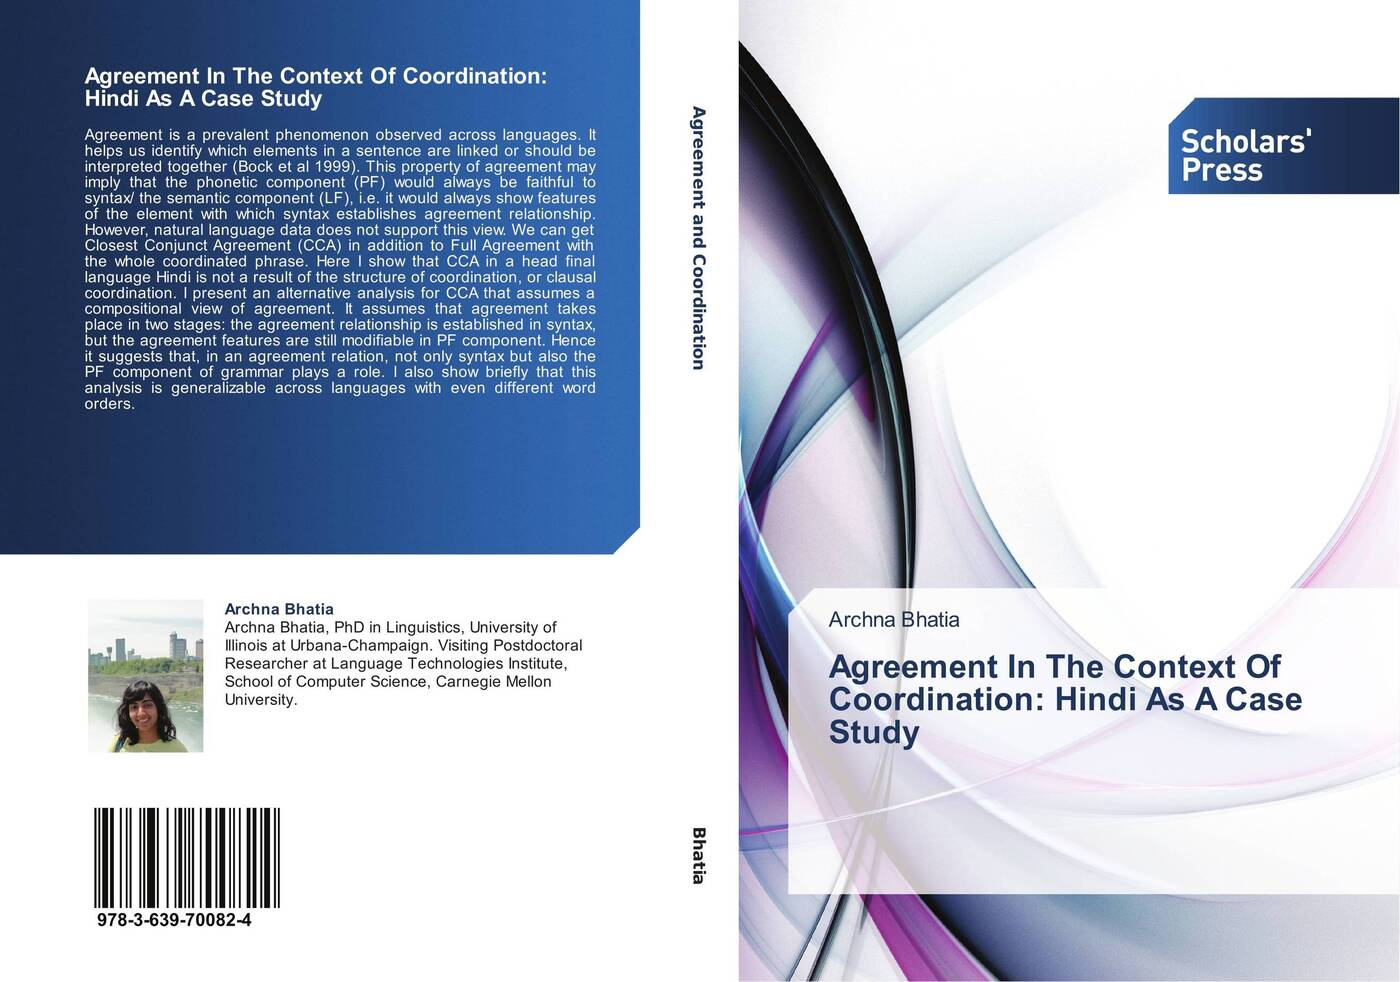 лучшая цена Archna Bhatia Agreement In The Context Of Coordination: Hindi As A Case Study